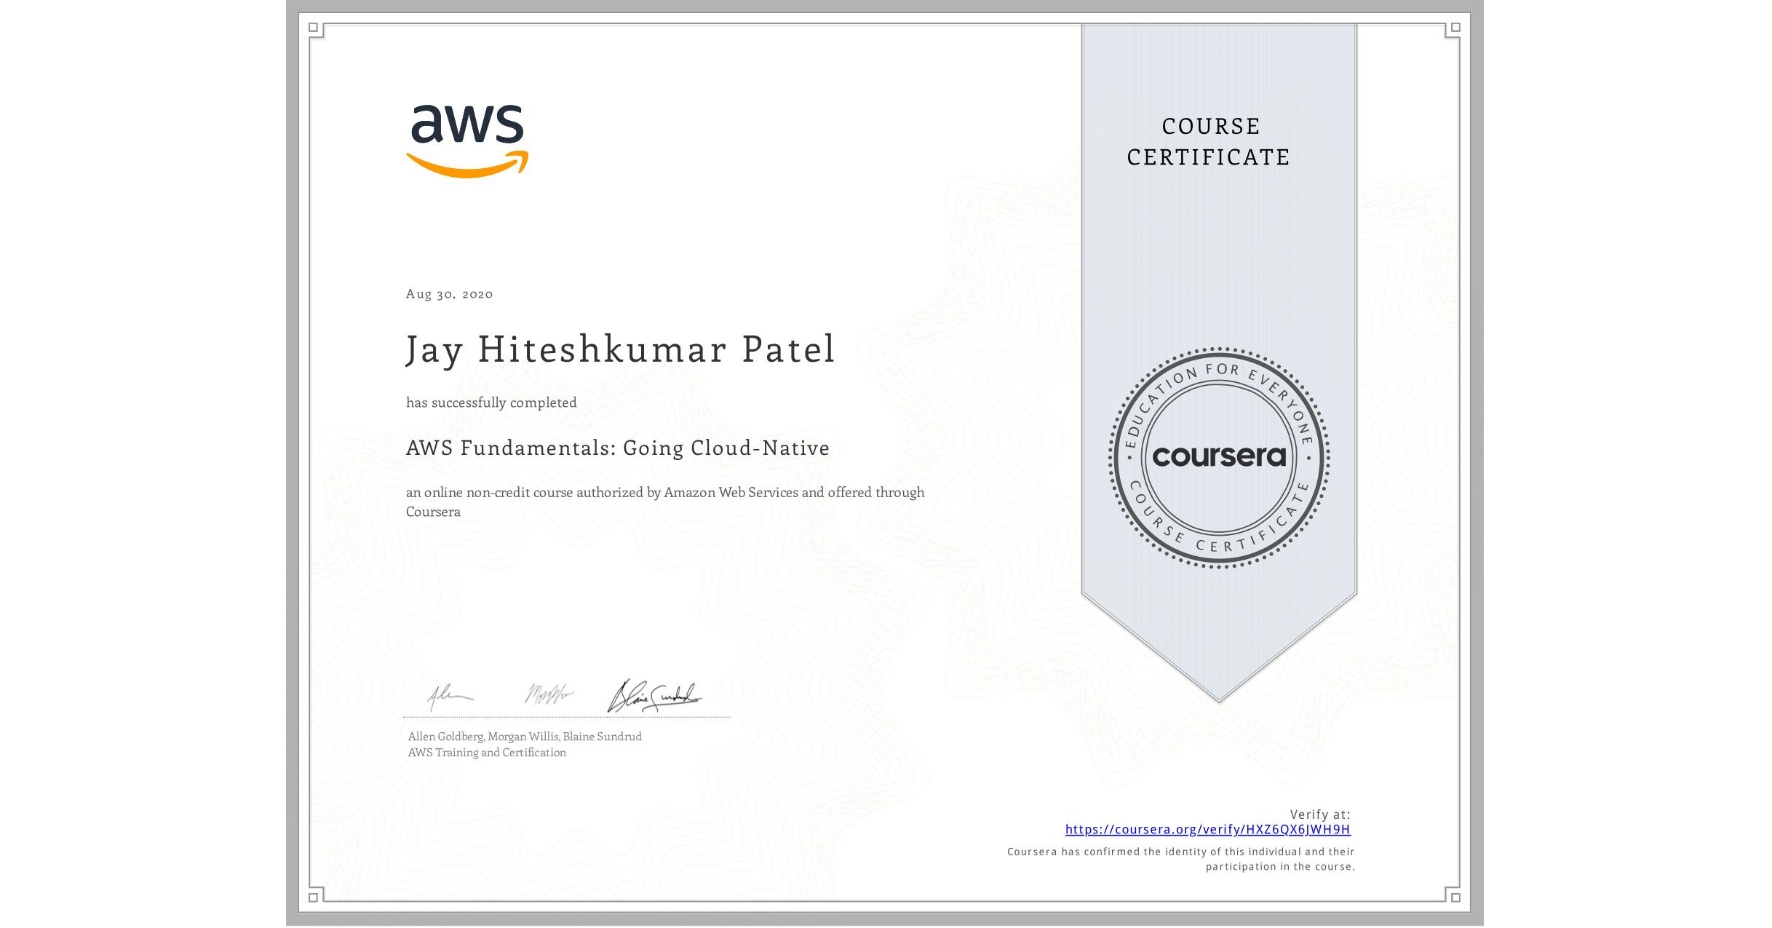 View certificate for Jay Hiteshkumar Patel, AWS Fundamentals: Going Cloud-Native, an online non-credit course authorized by Amazon Web Services and offered through Coursera